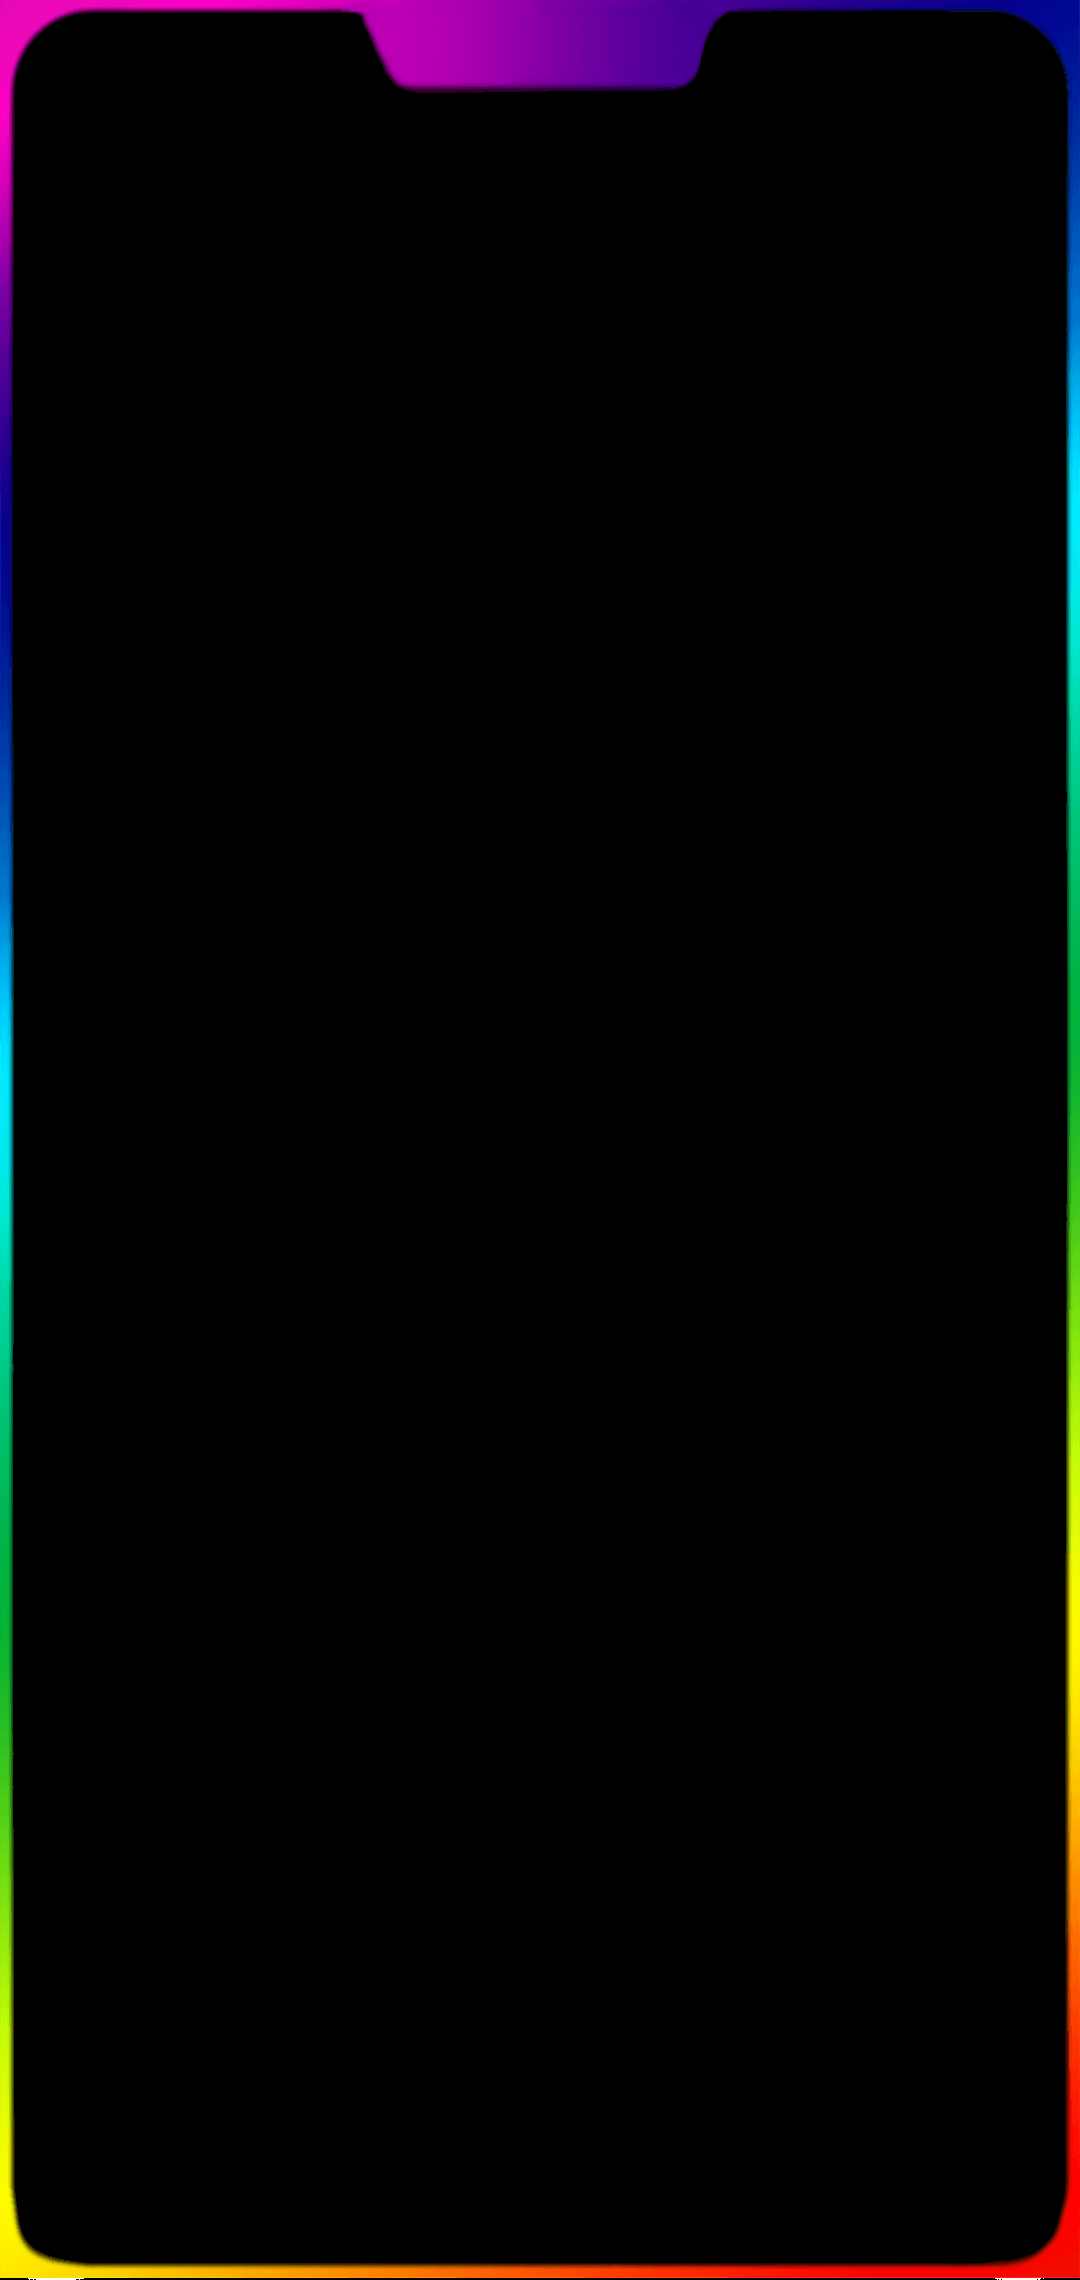 Iphone 11 Rainbow Border Wallpaper